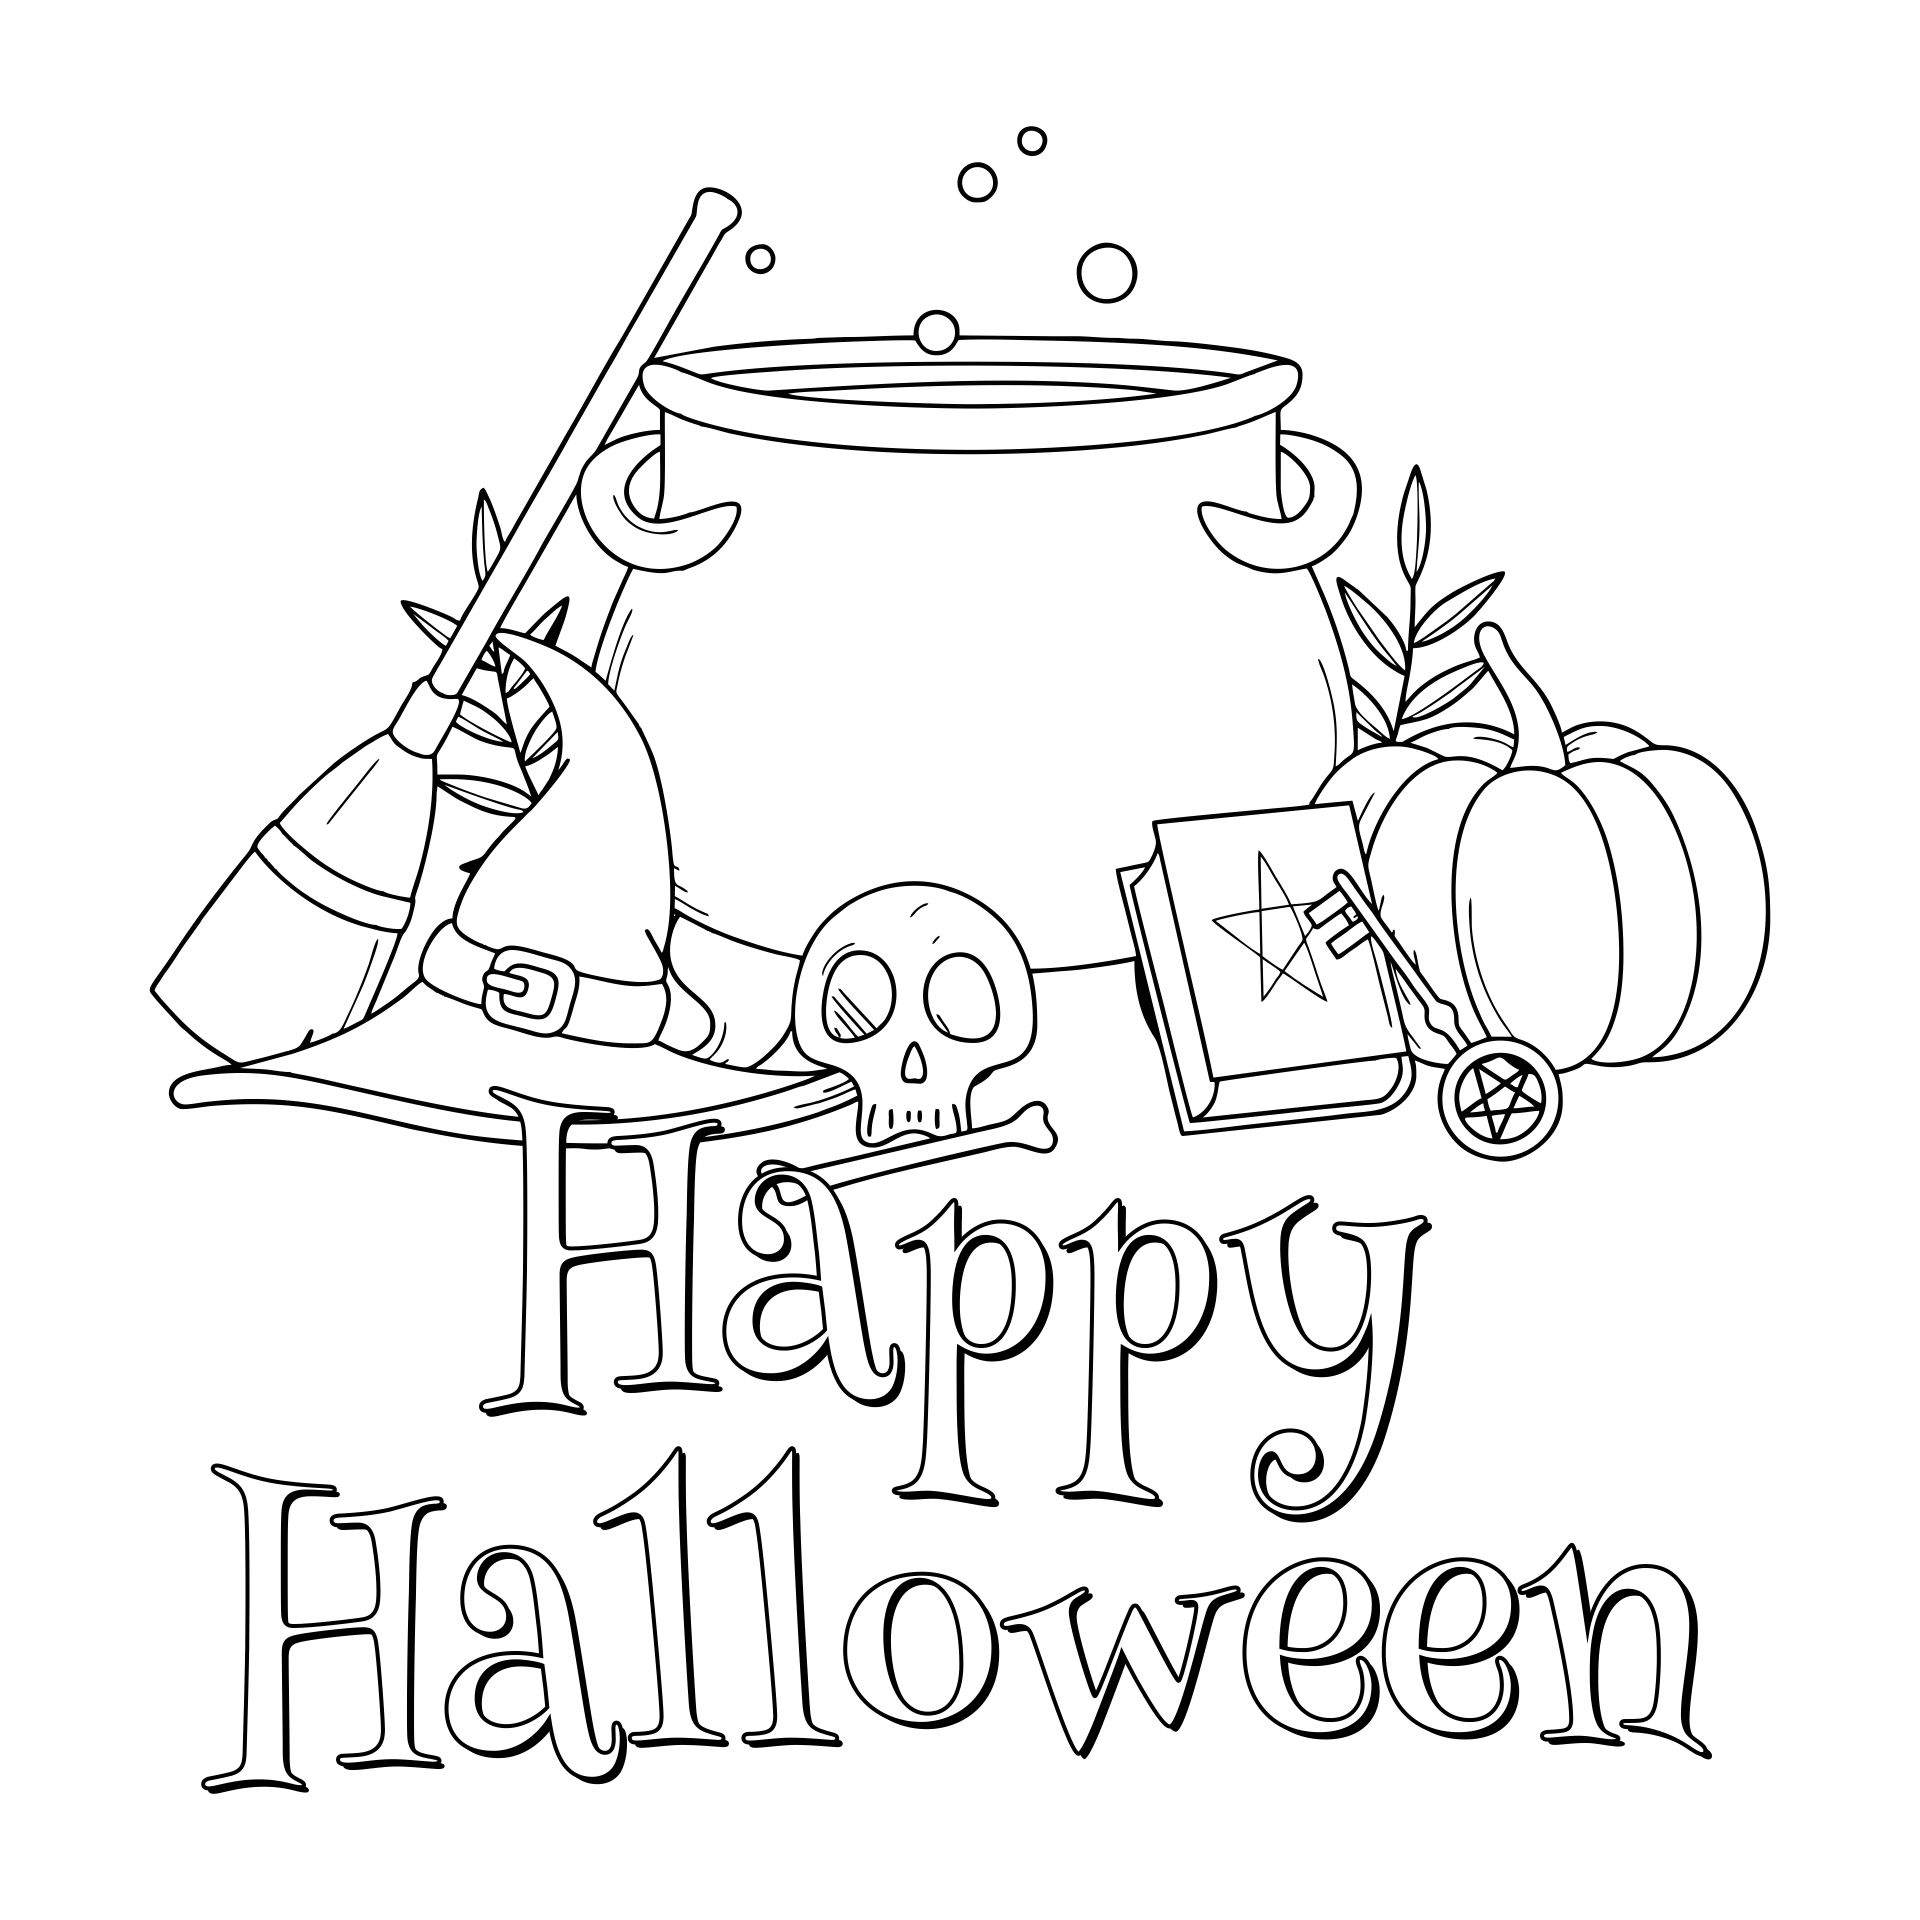 4 Images of Happy Halloween Printable Coloring Pages